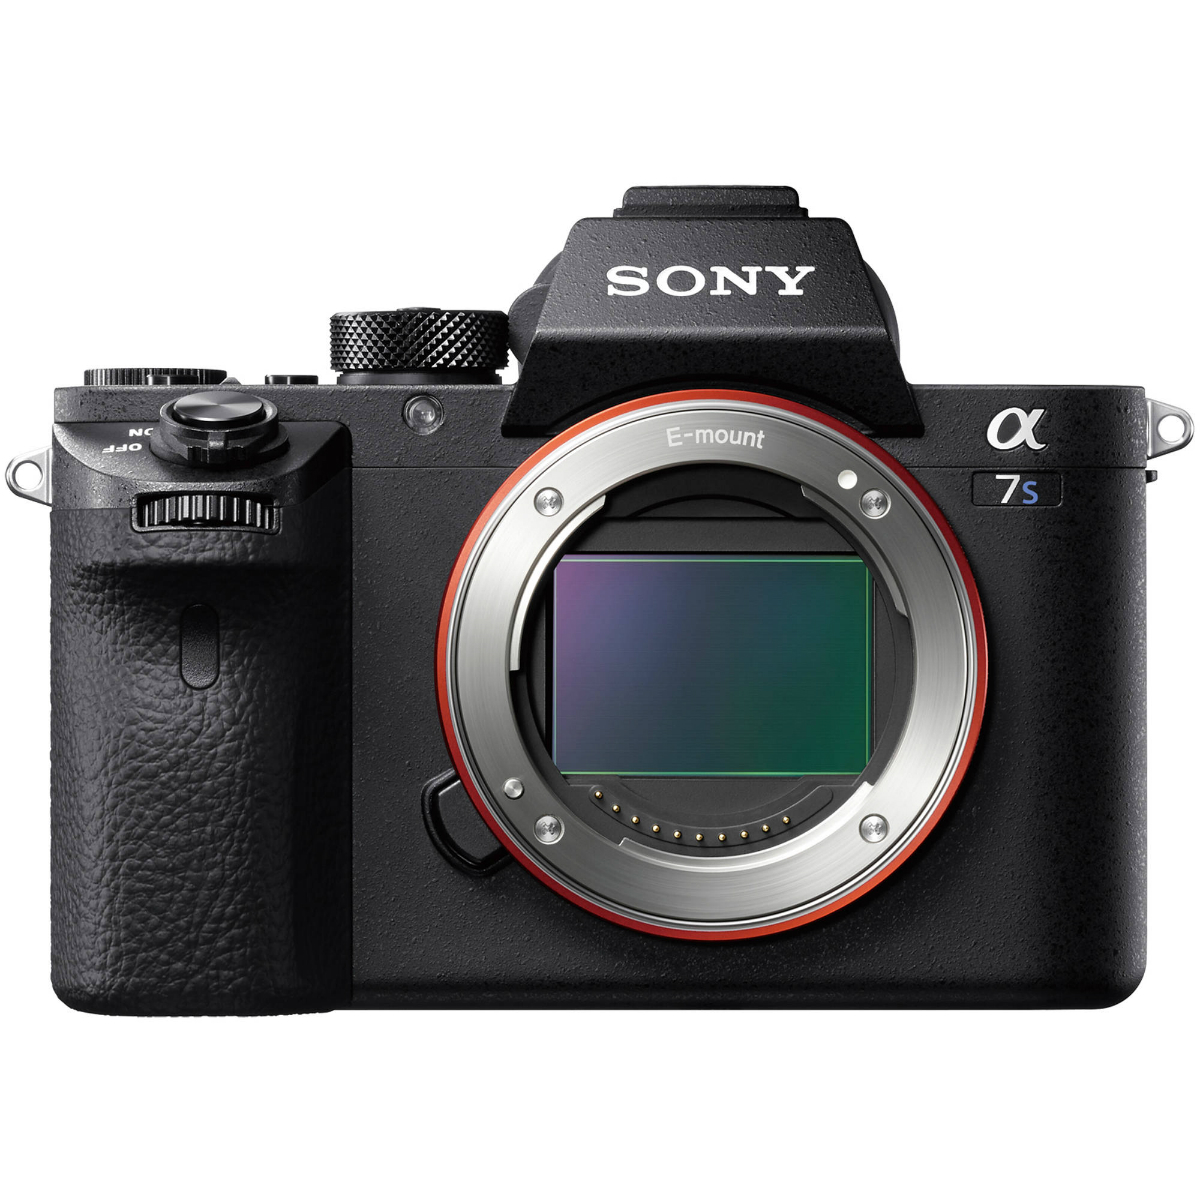 Image of Sony Alpha A7S II Body Only Mirrorless Digital Cameras